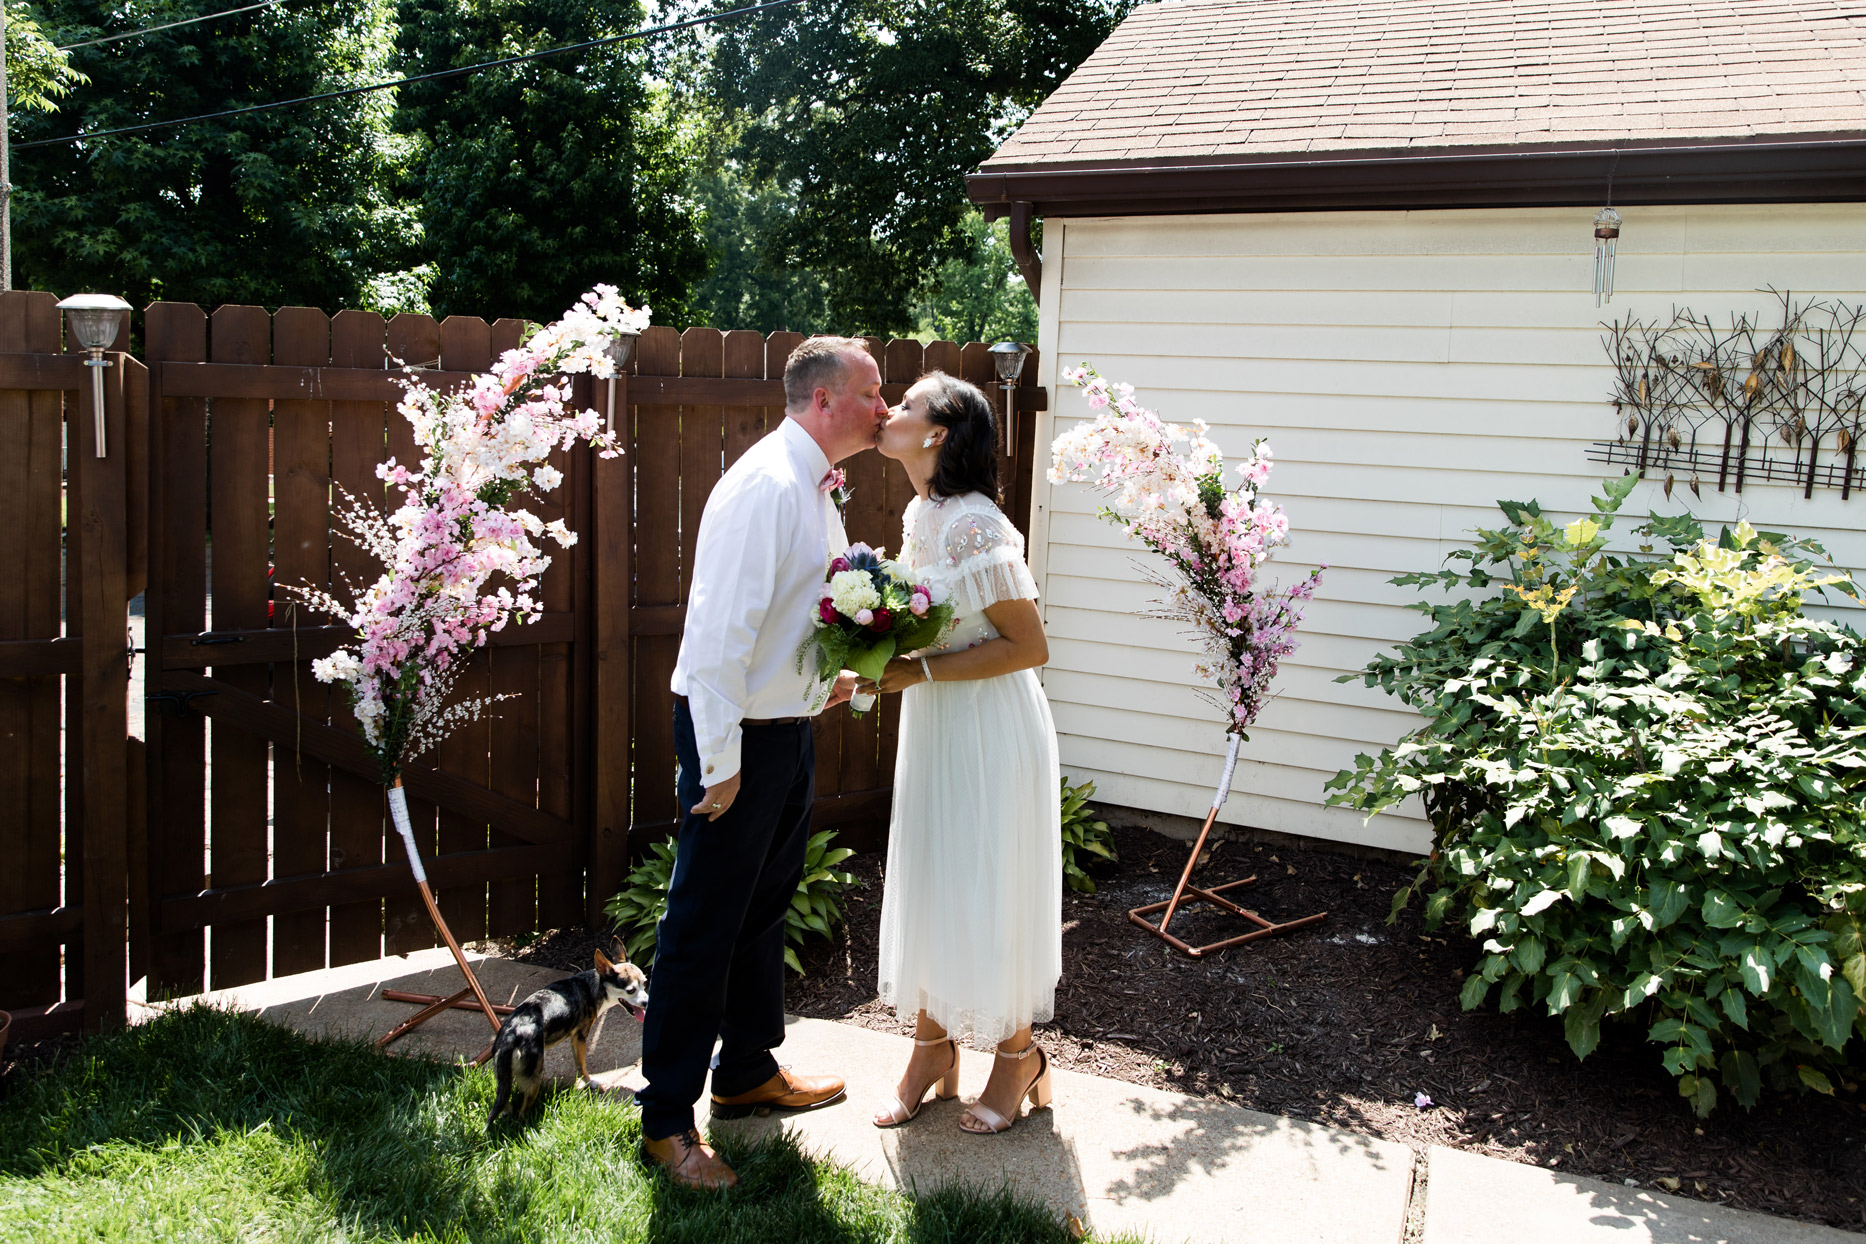 bride and groom sharing ceremonial kiss during backyard wedding